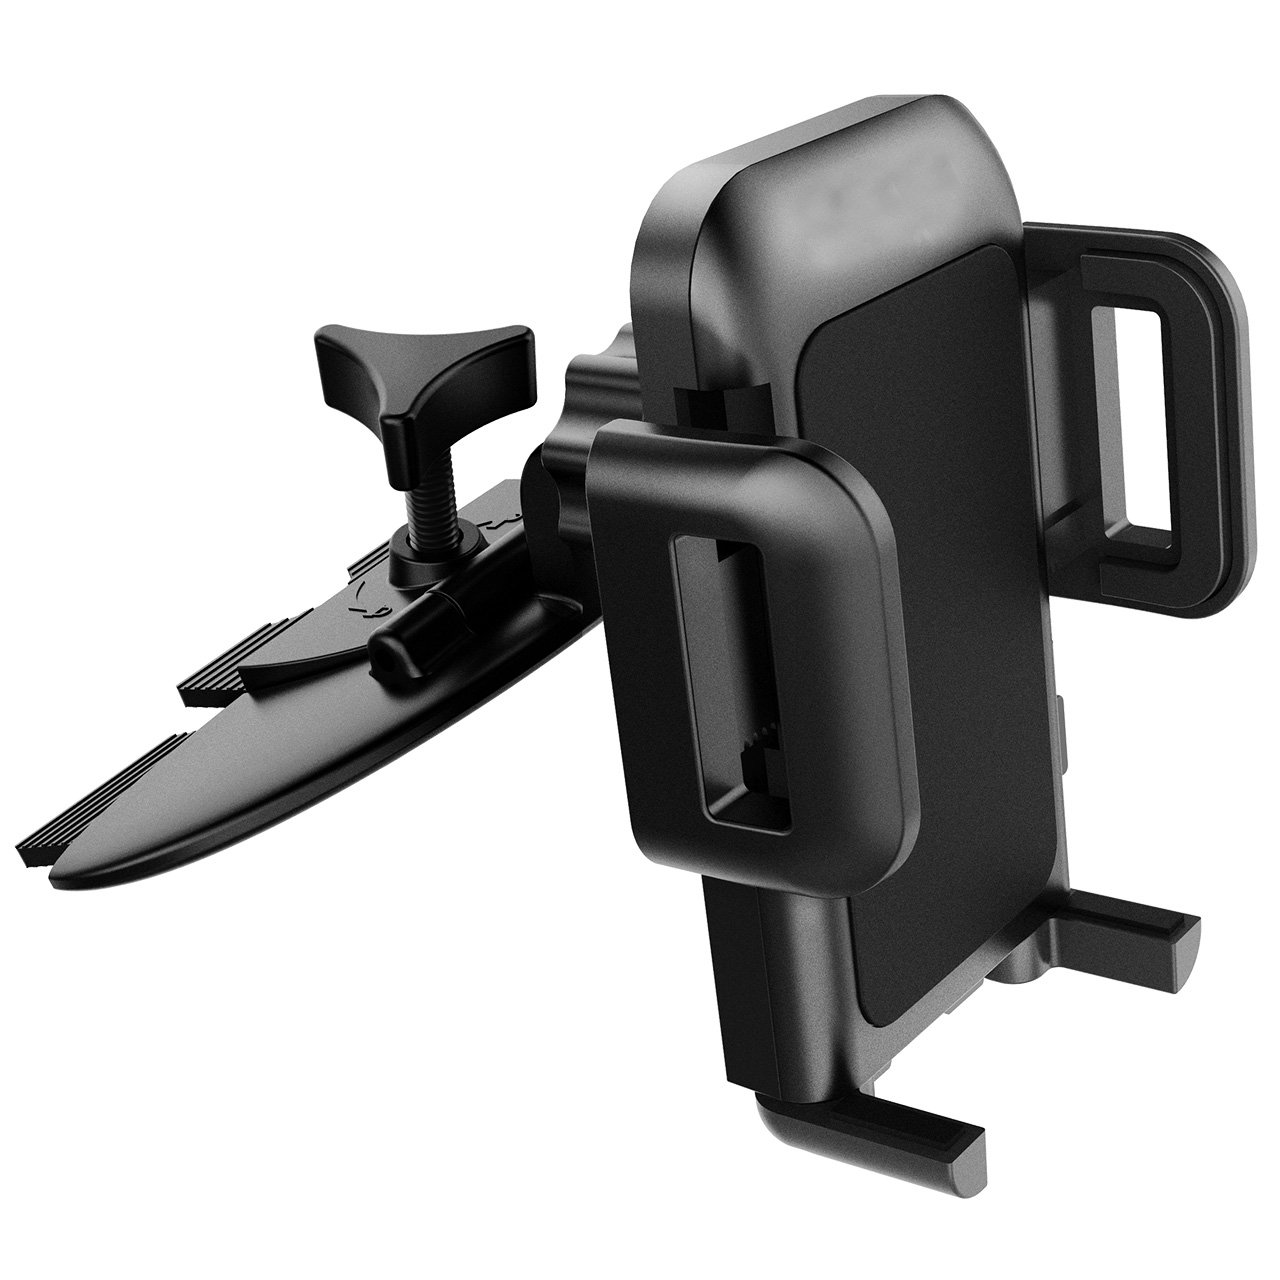 Mpow [Upgrade] Car Phone Mount,CD Slot Car Phone Holder Universal Car Cradle Phone Mount with Three-Side Grips for iPhone X/8/8Plus/7/7Plus/6s/6P/5S, Galaxy S5/S6/S7/S8, Google, Huawei etc